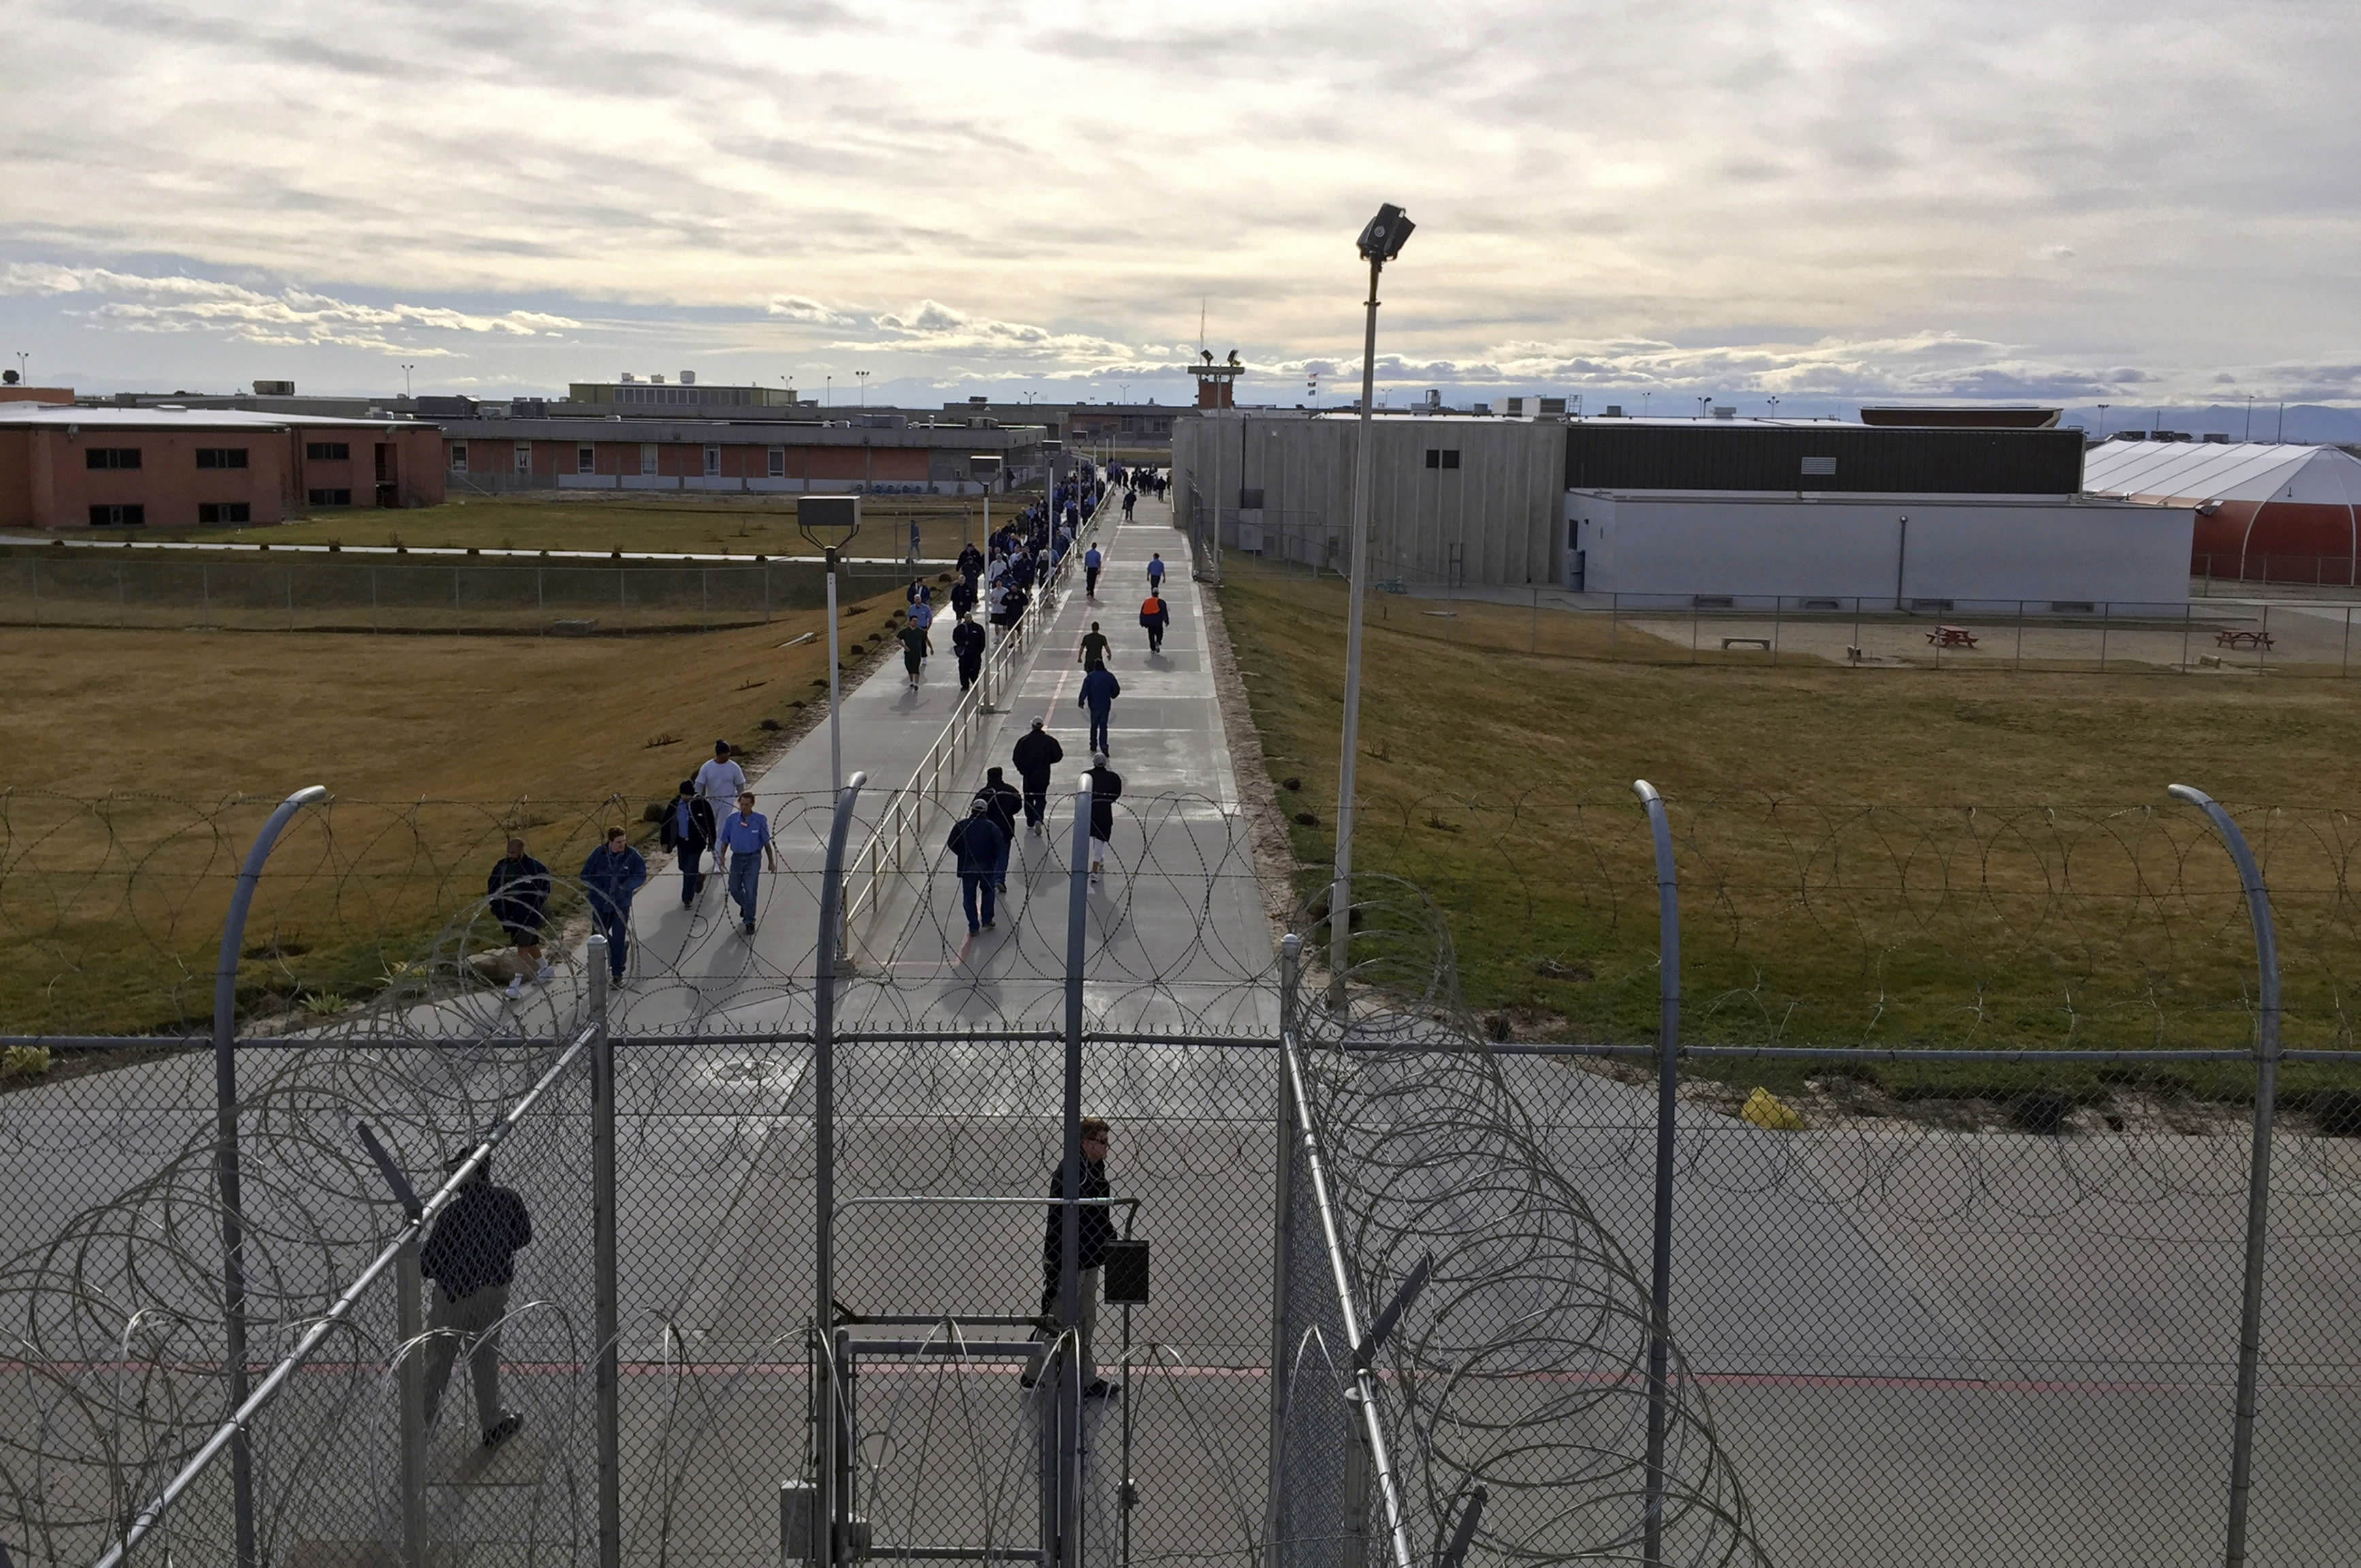 FILE - In this Jan. 30, 2018, file photo, inmates walk across the grounds of the Idaho State Correctional Institution in Kuna, Idaho. Hundreds of thousands of dollars in coronavirus relief payments have been sent to people behind bars across the United States, and now the IRS is asking state officials to help claw back the cash that the federal tax agency says was mistakenly sent. The IRS doesn't yet have numbers on how many payments went to inmates. But initial numbers from some states suggest the numbers are huge: The Kansas Department of Correction alone intercepted more than $200,000 in checks sent to prisoners by early June. Idaho and Montana combined had intercepted over $90,000. (AP Photo/Rebecca Boone, File)